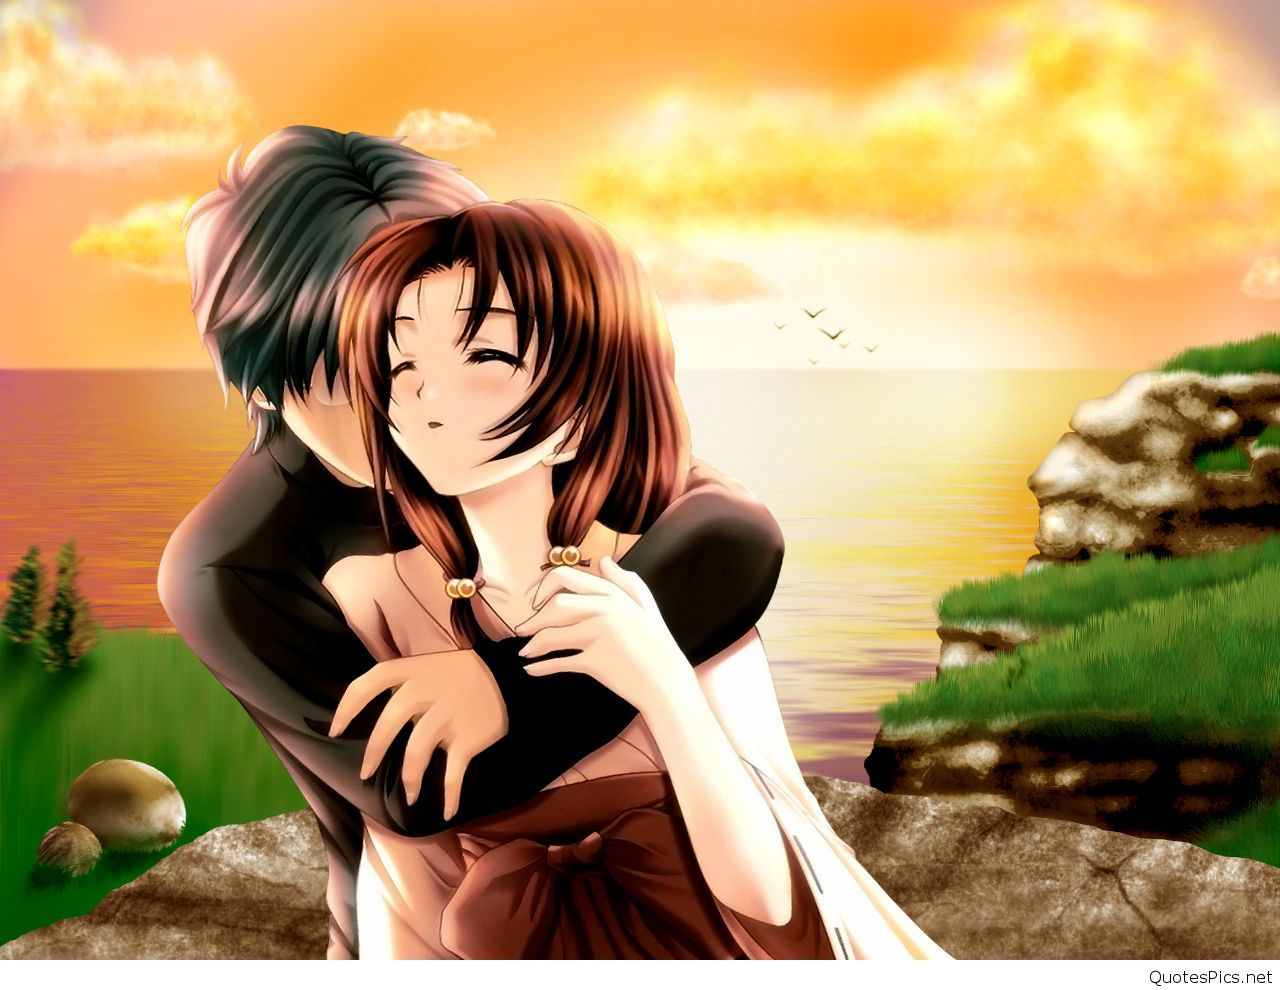 Cute Cartoon Couple Wallpapers For Mobile Wallpaper Cave Cute Couple Wallpaper Love Couple Wallpaper Love Cartoon Couple